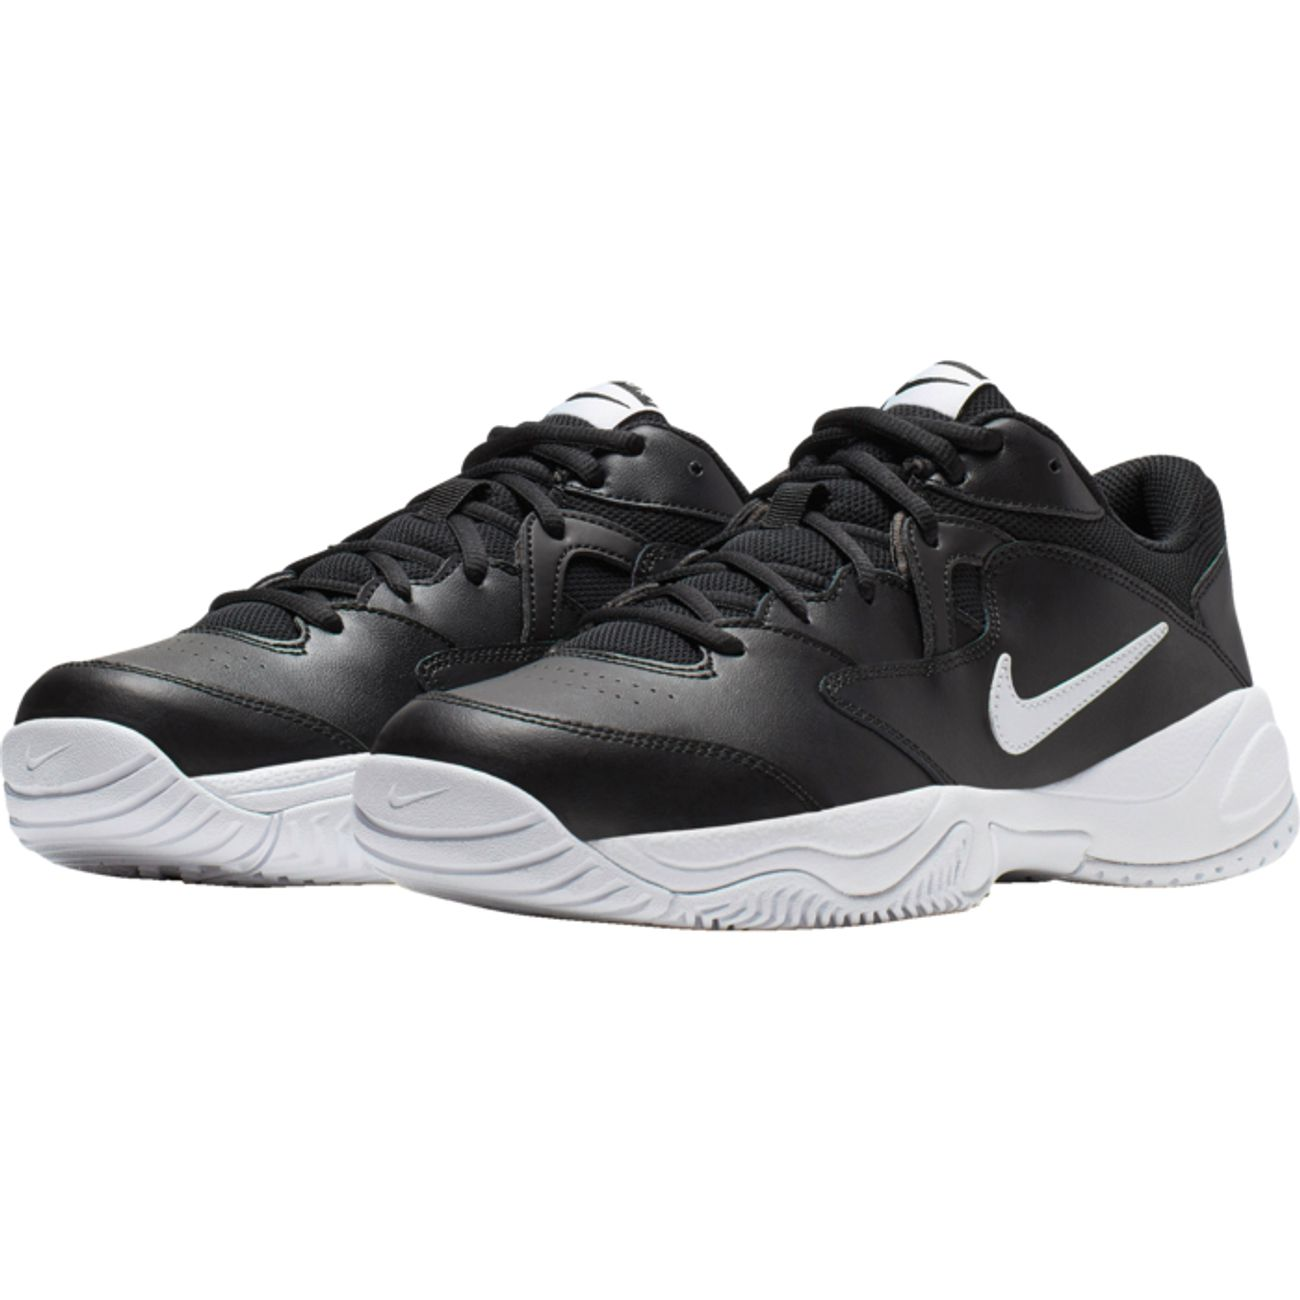 CHAUSSURES BASSES Tennis homme NIKE COURT LITE 2